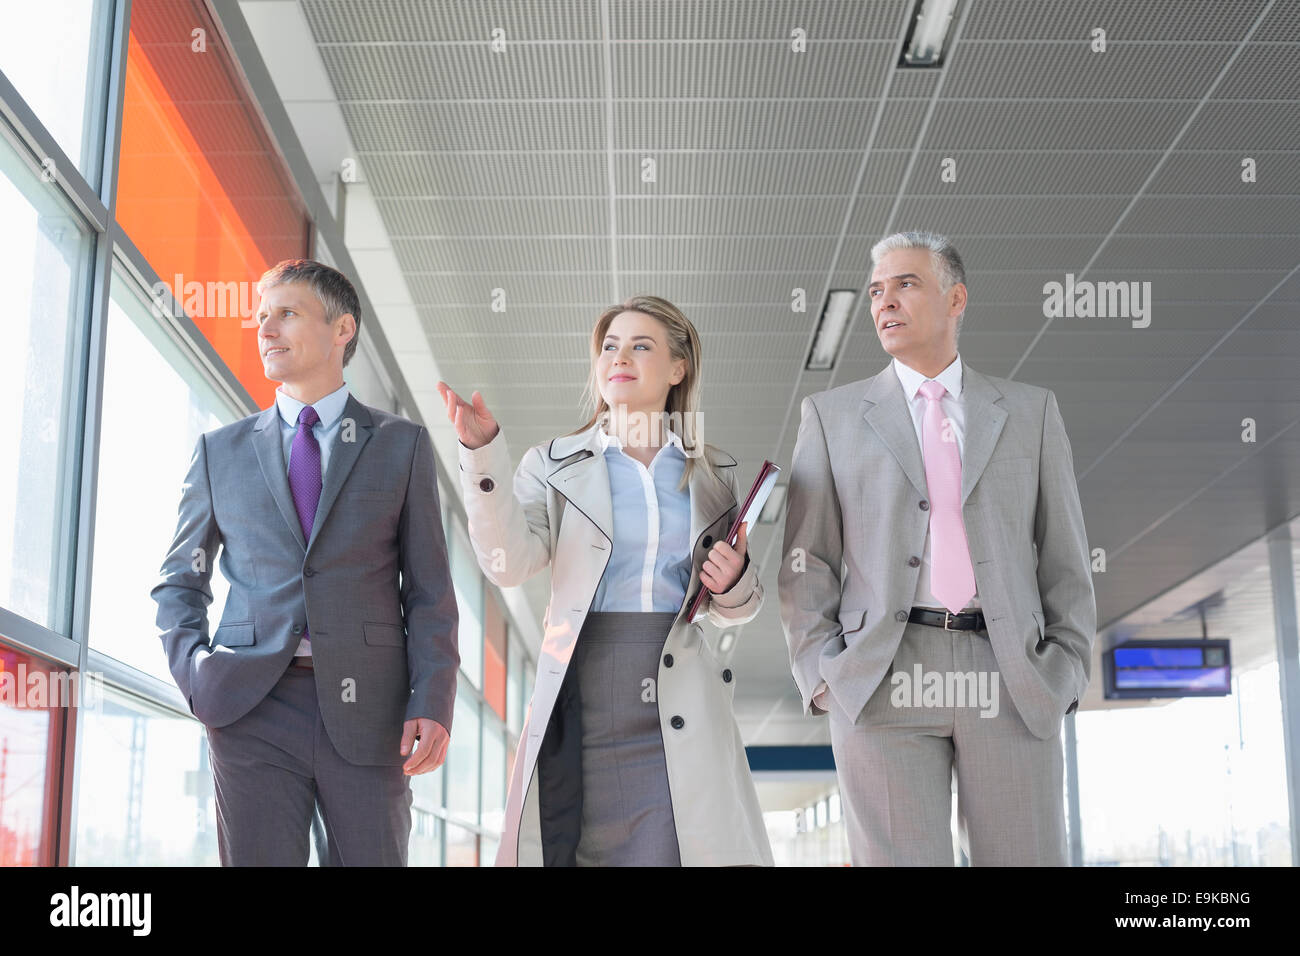 Business people discussing while walking on train platform - Stock Image